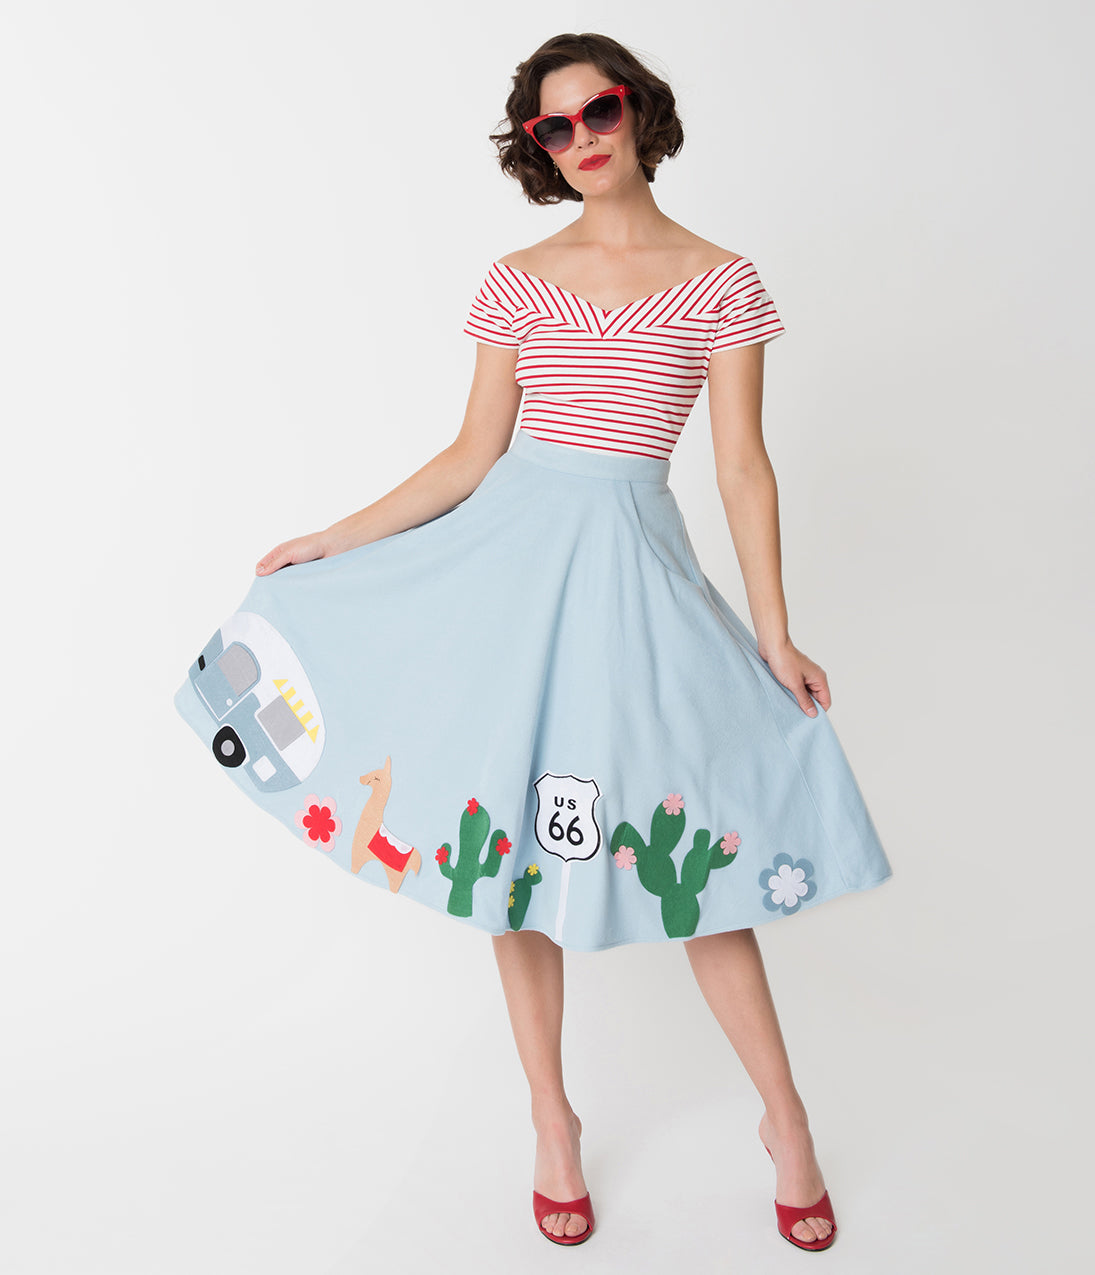 1950s Swing Skirt, Poodle Skirt, Pencil Skirts 1950 Route 66 Soda Shop Swing Skirt $88.00 AT vintagedancer.com